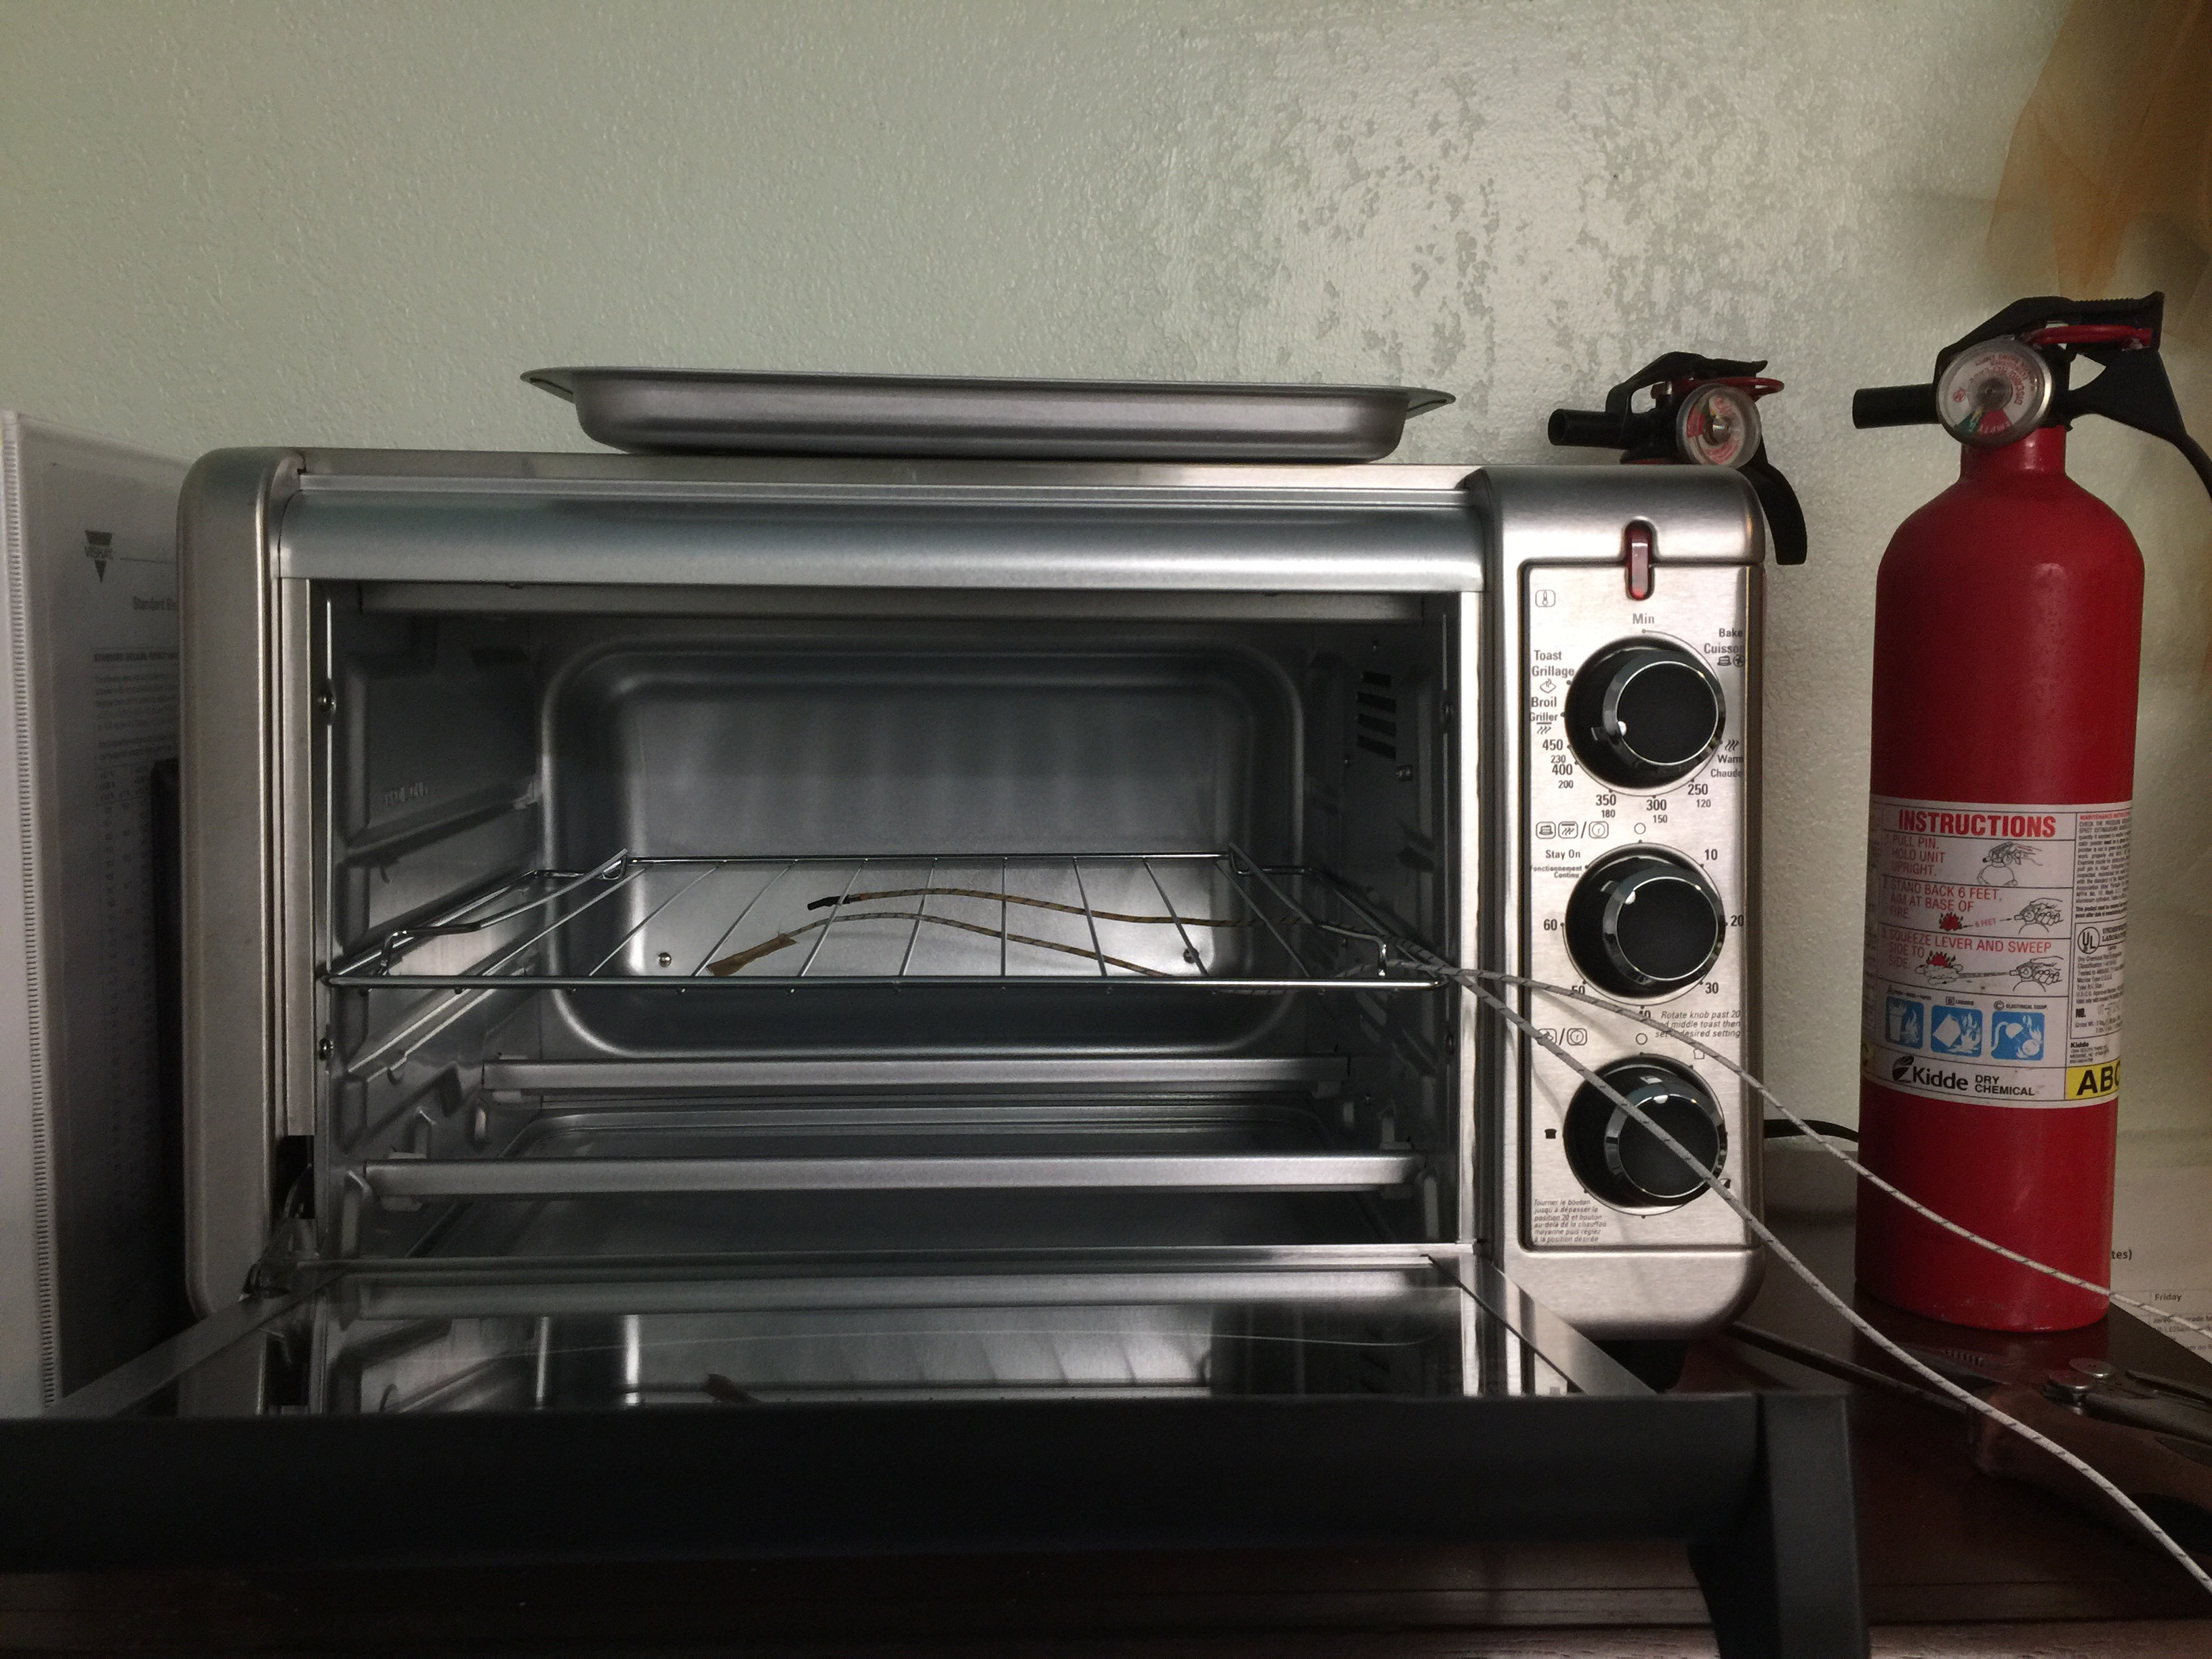 Toaster Oven with Sensors